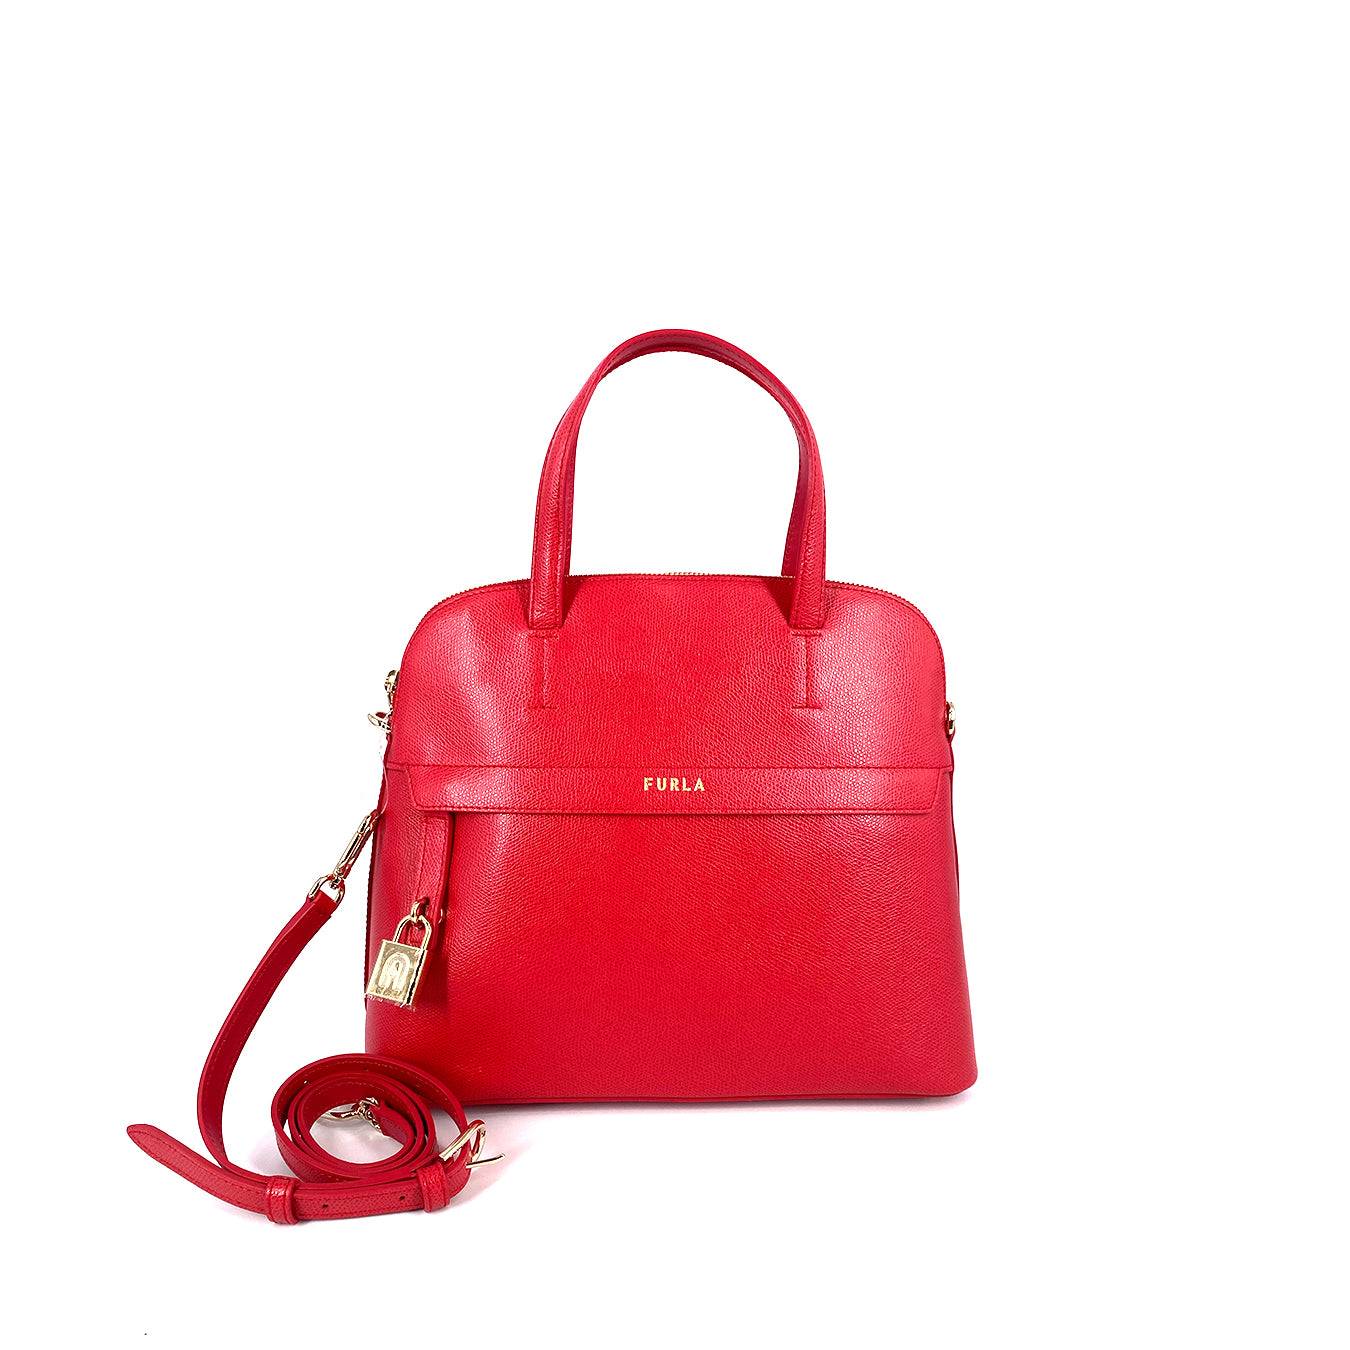 Furla Piper Dome Medium Top Handle Satchel Ruby